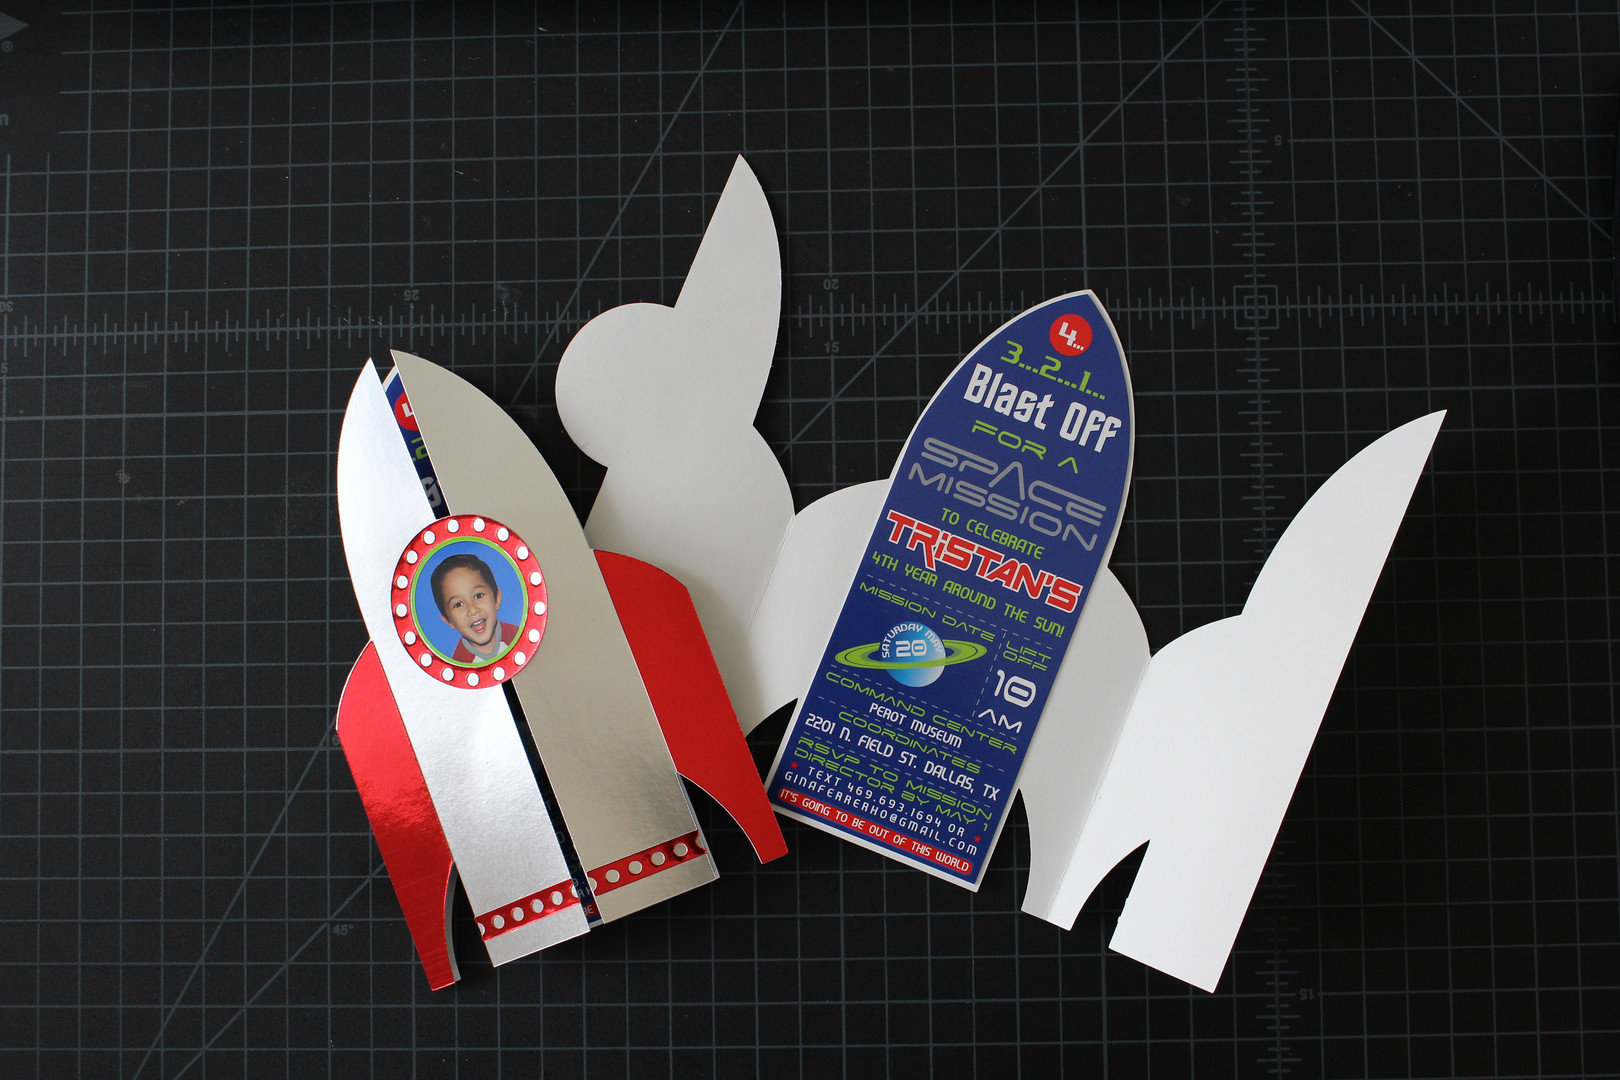 Craft-Rocket Gatefold Invitation.JPG